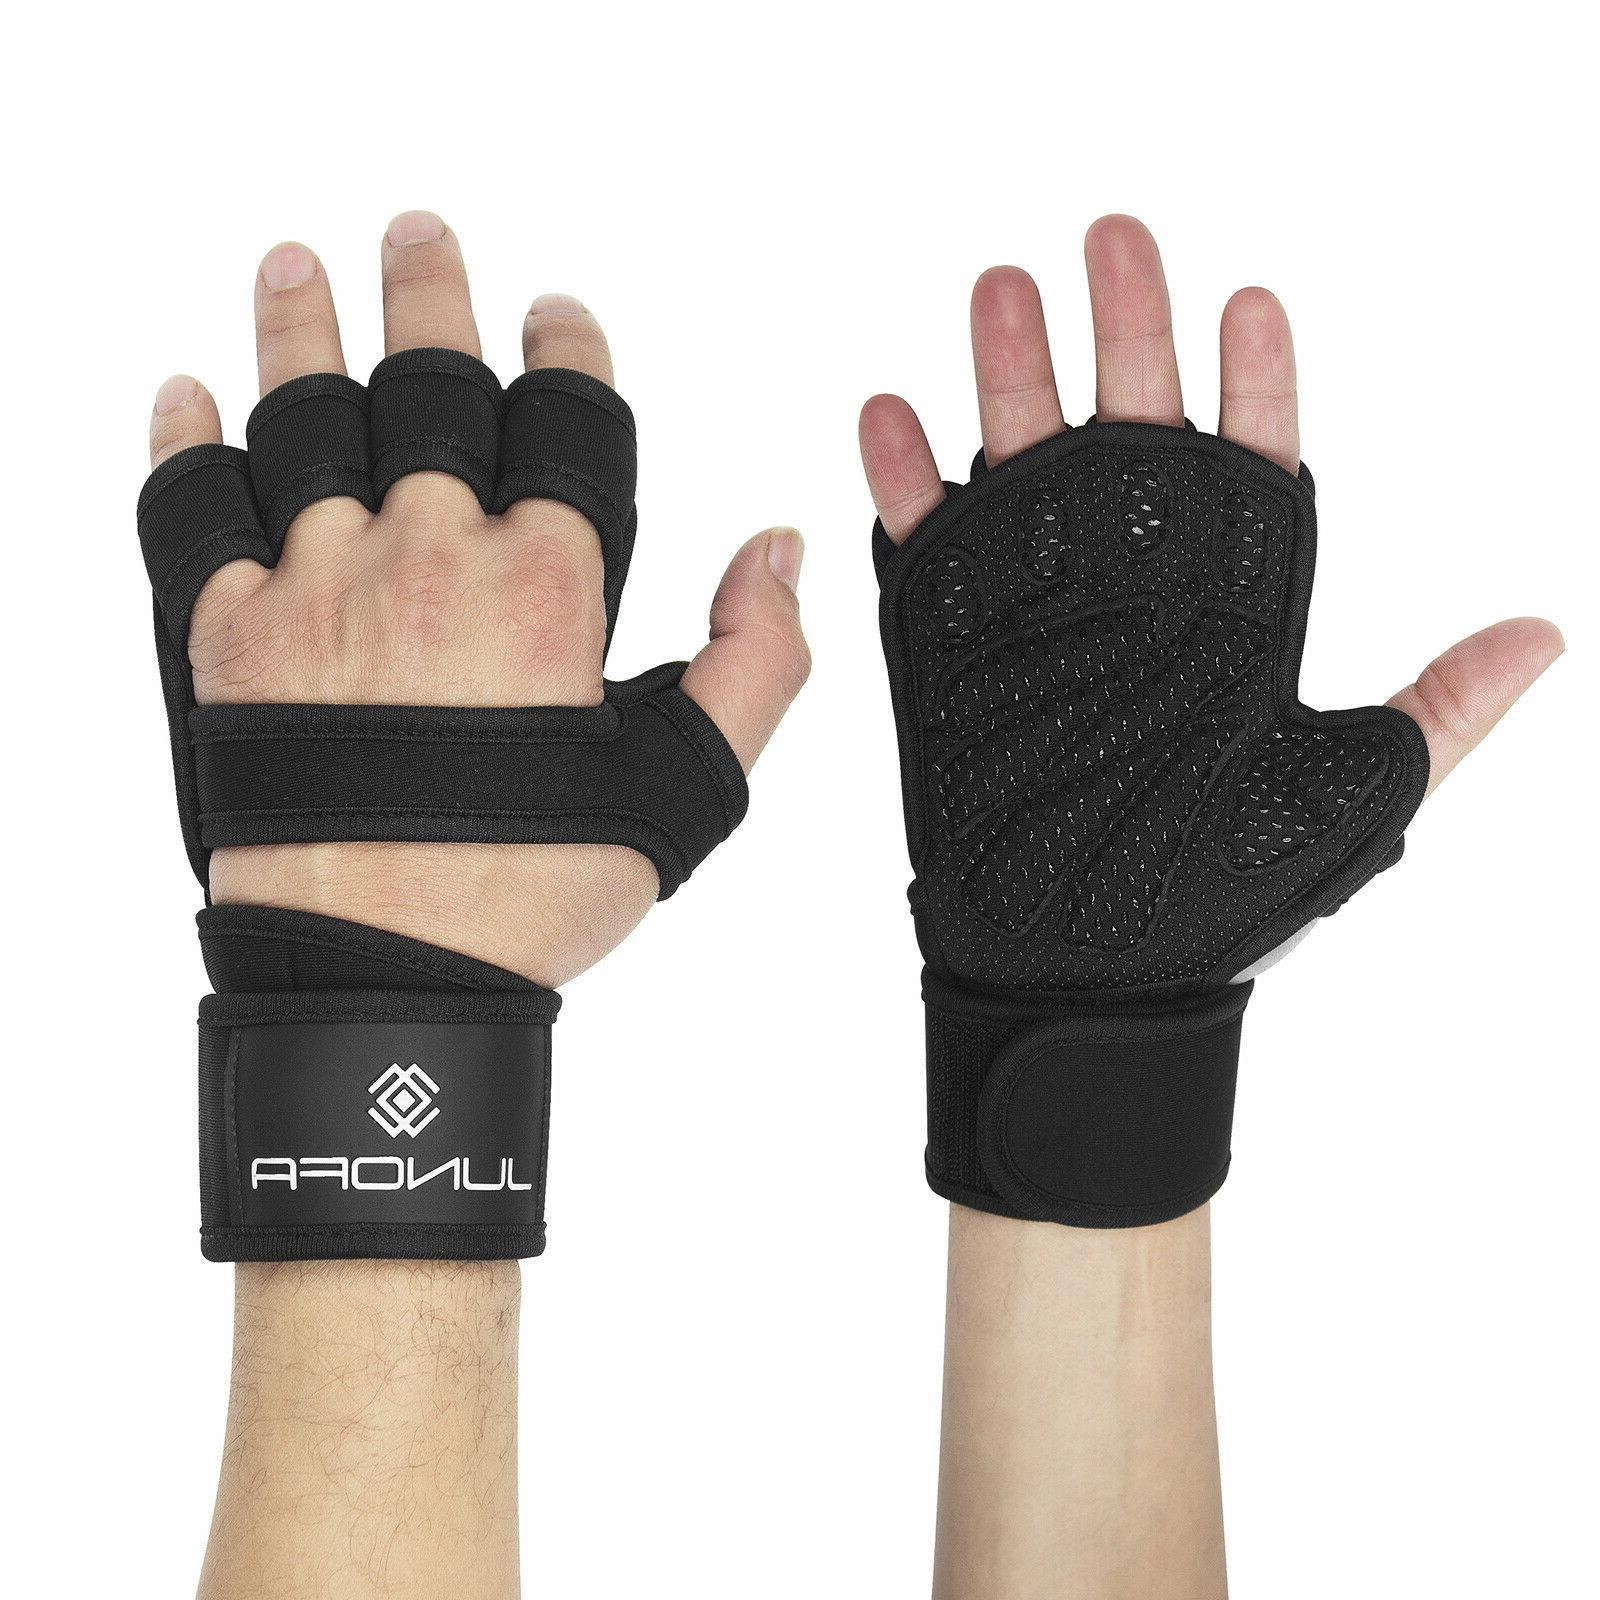 pro weight lifting gloves fitness glove gym